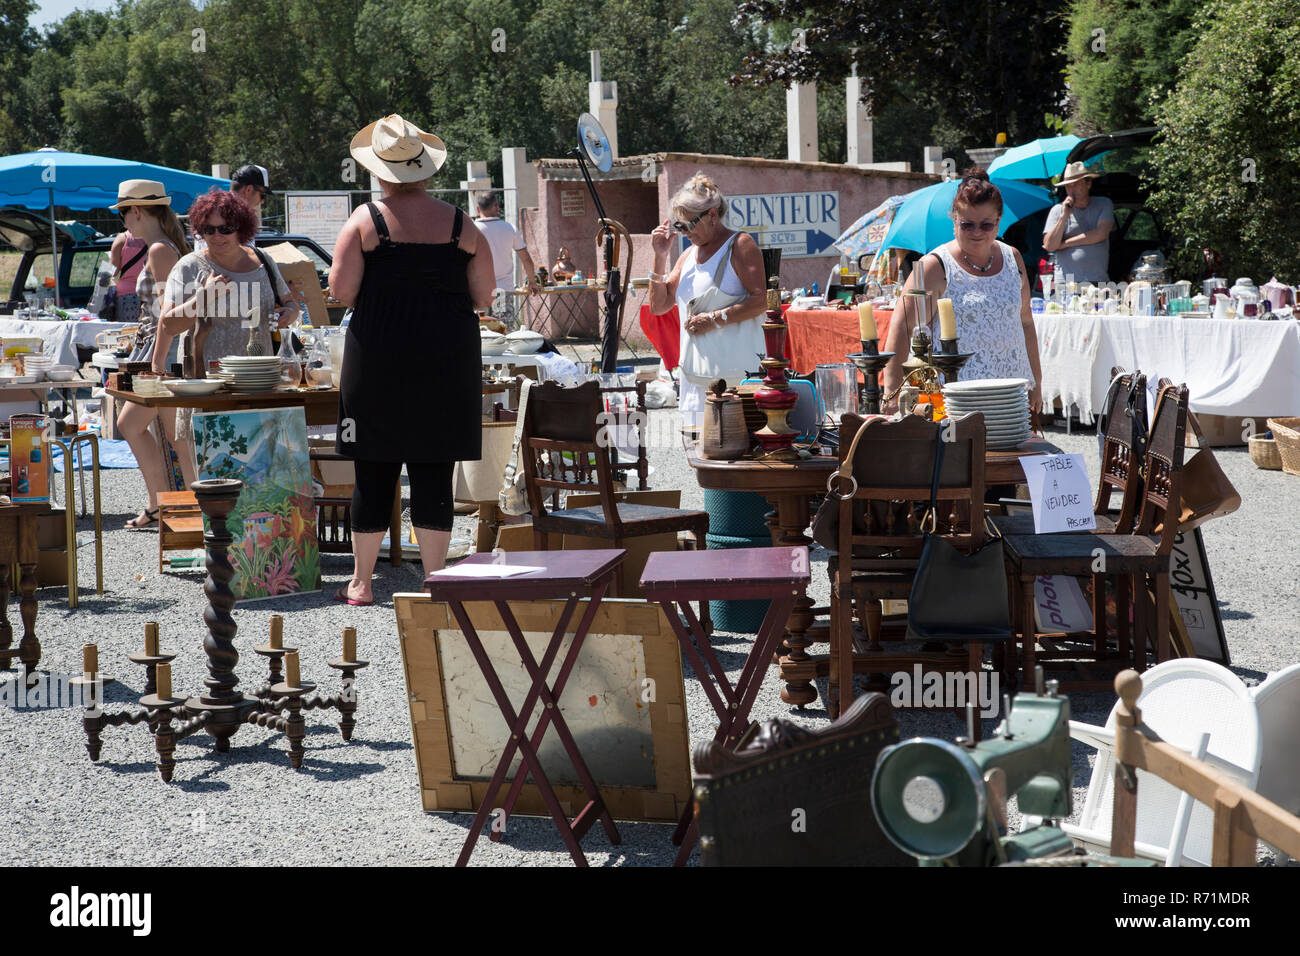 Bric A Brac Saone Et Loire brocante stock photos & brocante stock images - page 3 - alamy